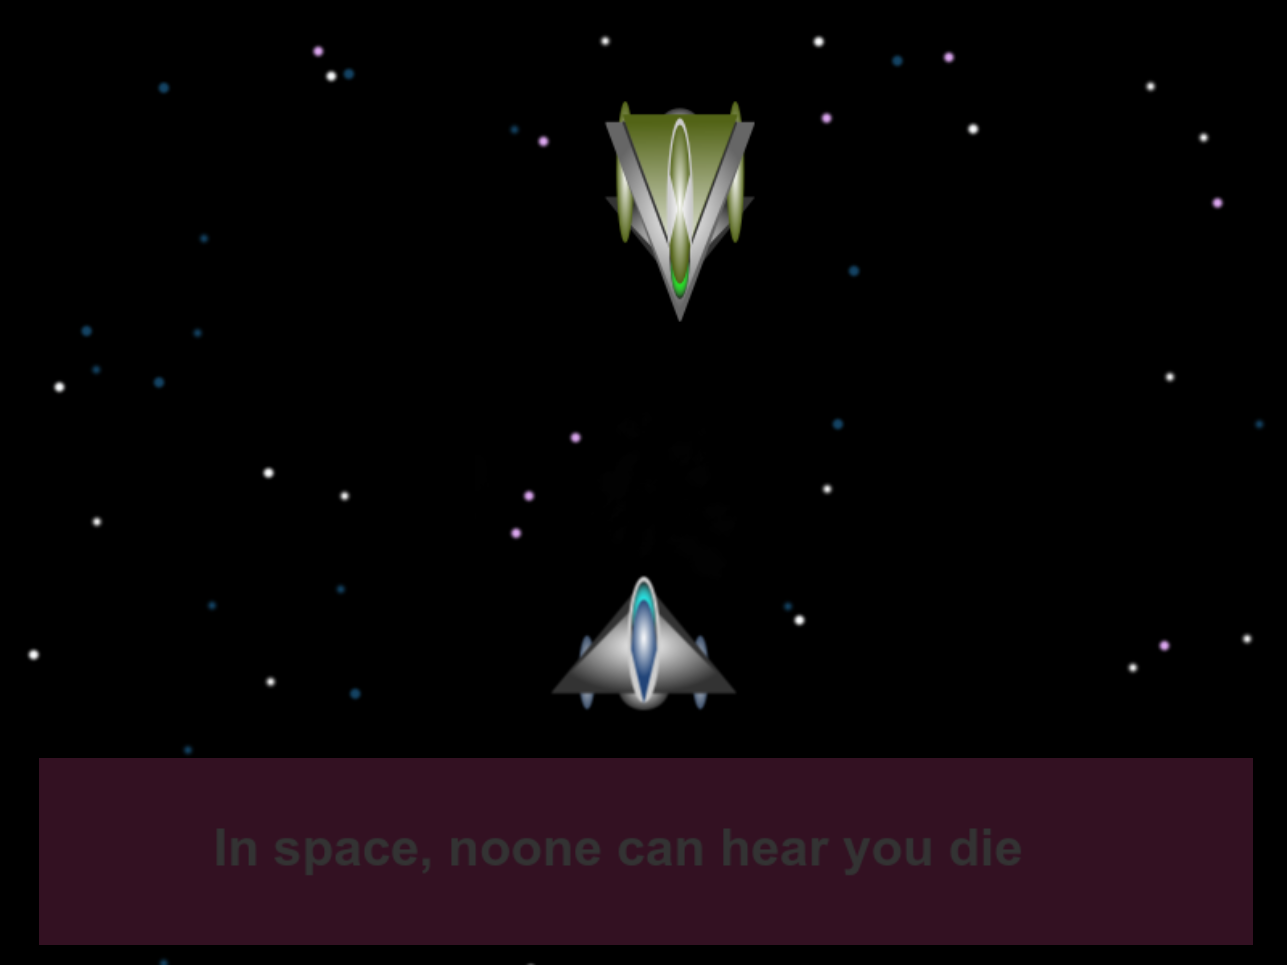 In space, noone can hear you die by dollarone